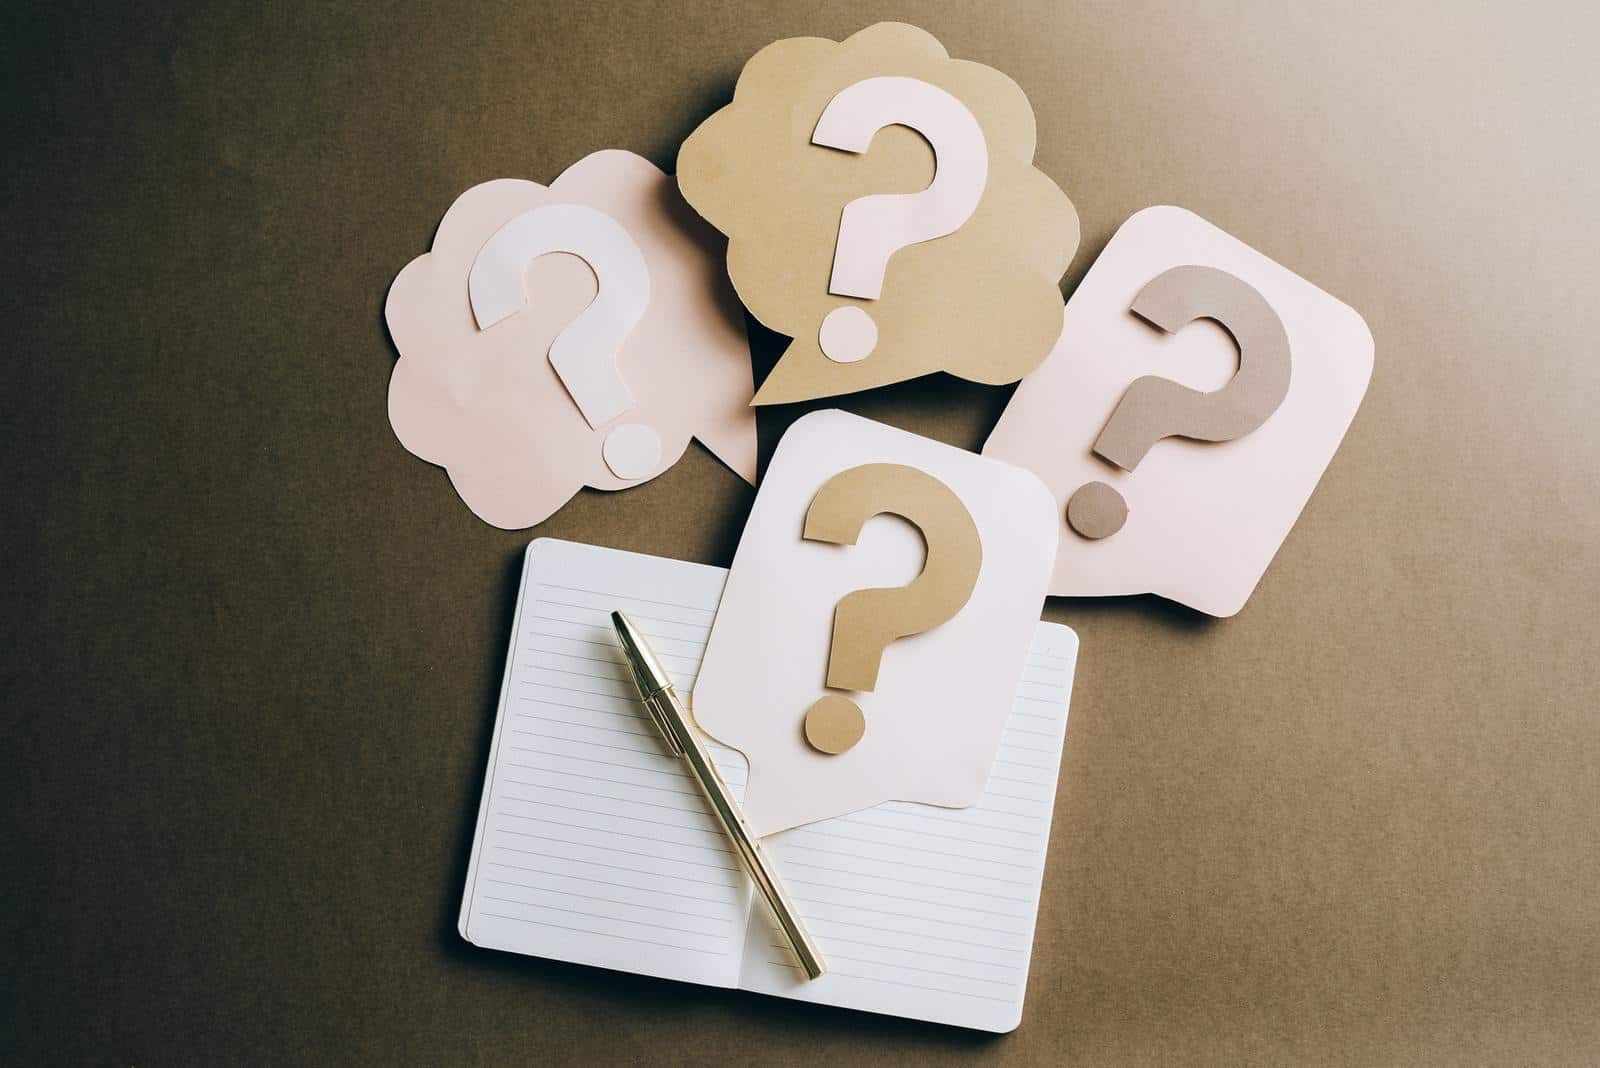 Question marks made out of cardboard